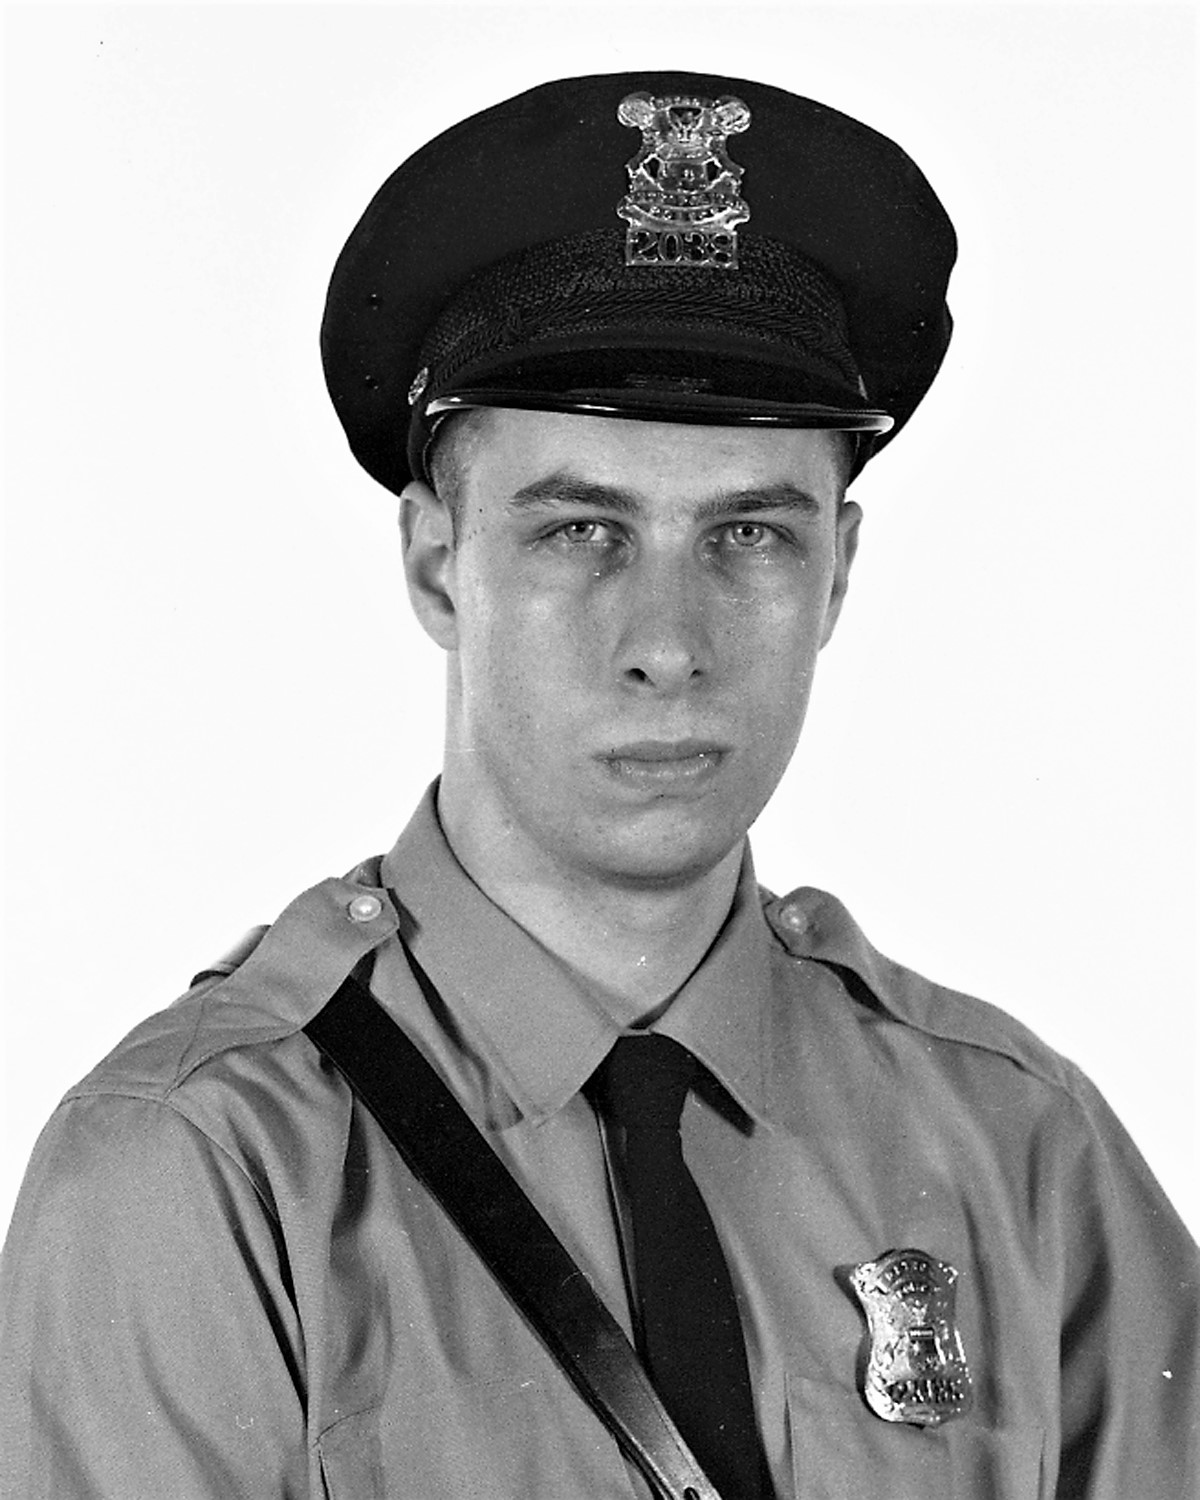 Police Officer James E. Wolframe | Detroit Police Department, Michigan